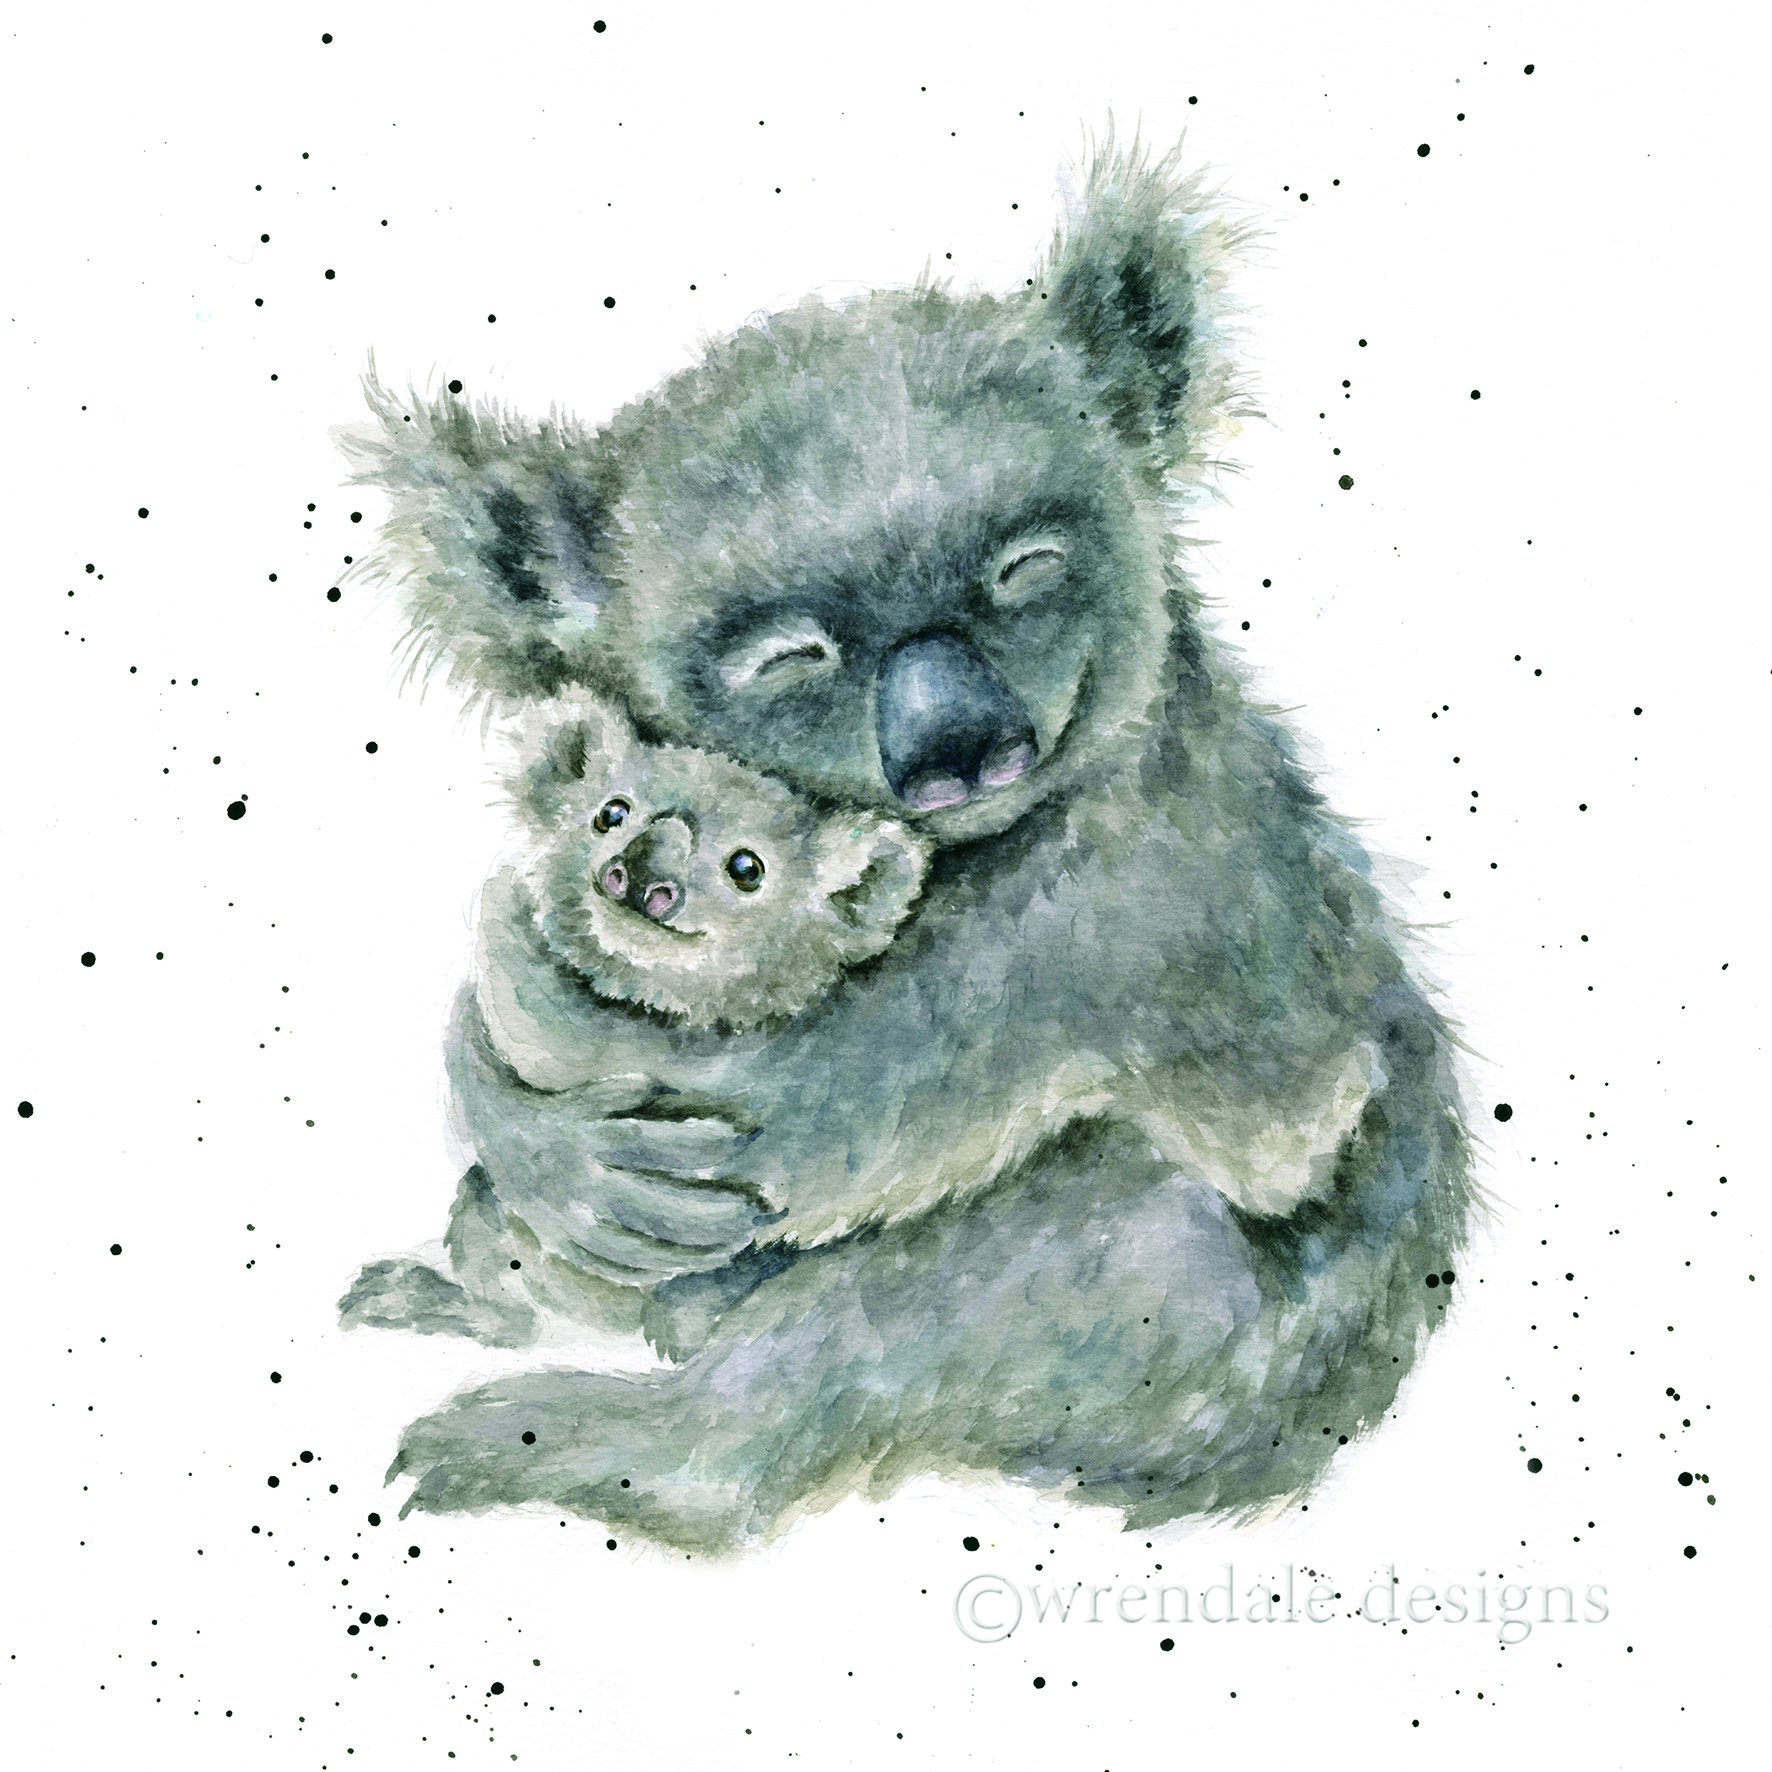 Above: Wrendale raised over £20,000 in donations for the WWF Australia Appeal with its mother and baby koala watercolour draw giveaway.